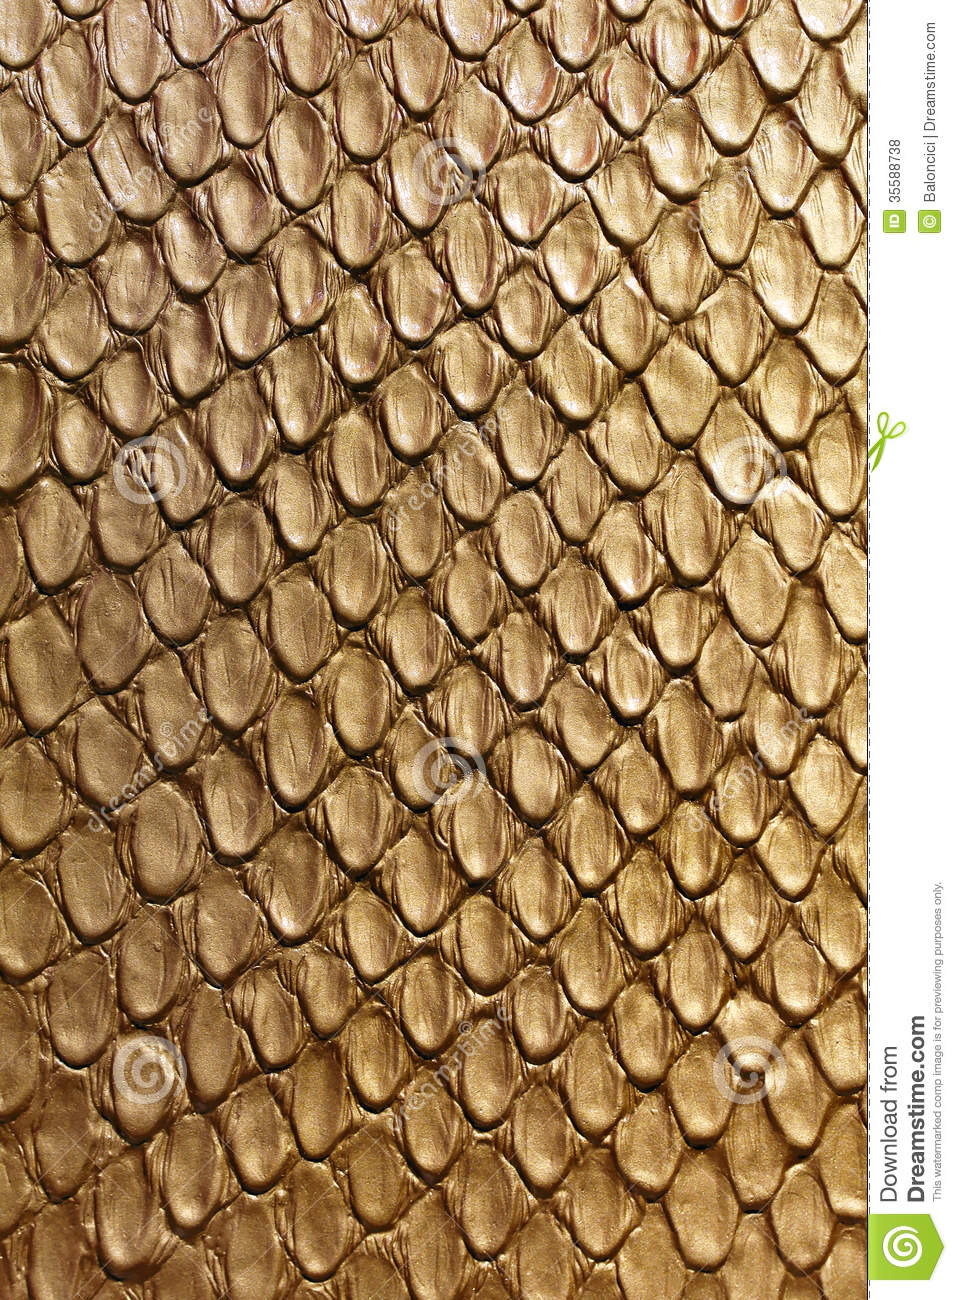 3d Fish Wallpaper Download Gold Snake Texture Royalty Free Stock Photos Image 35588738